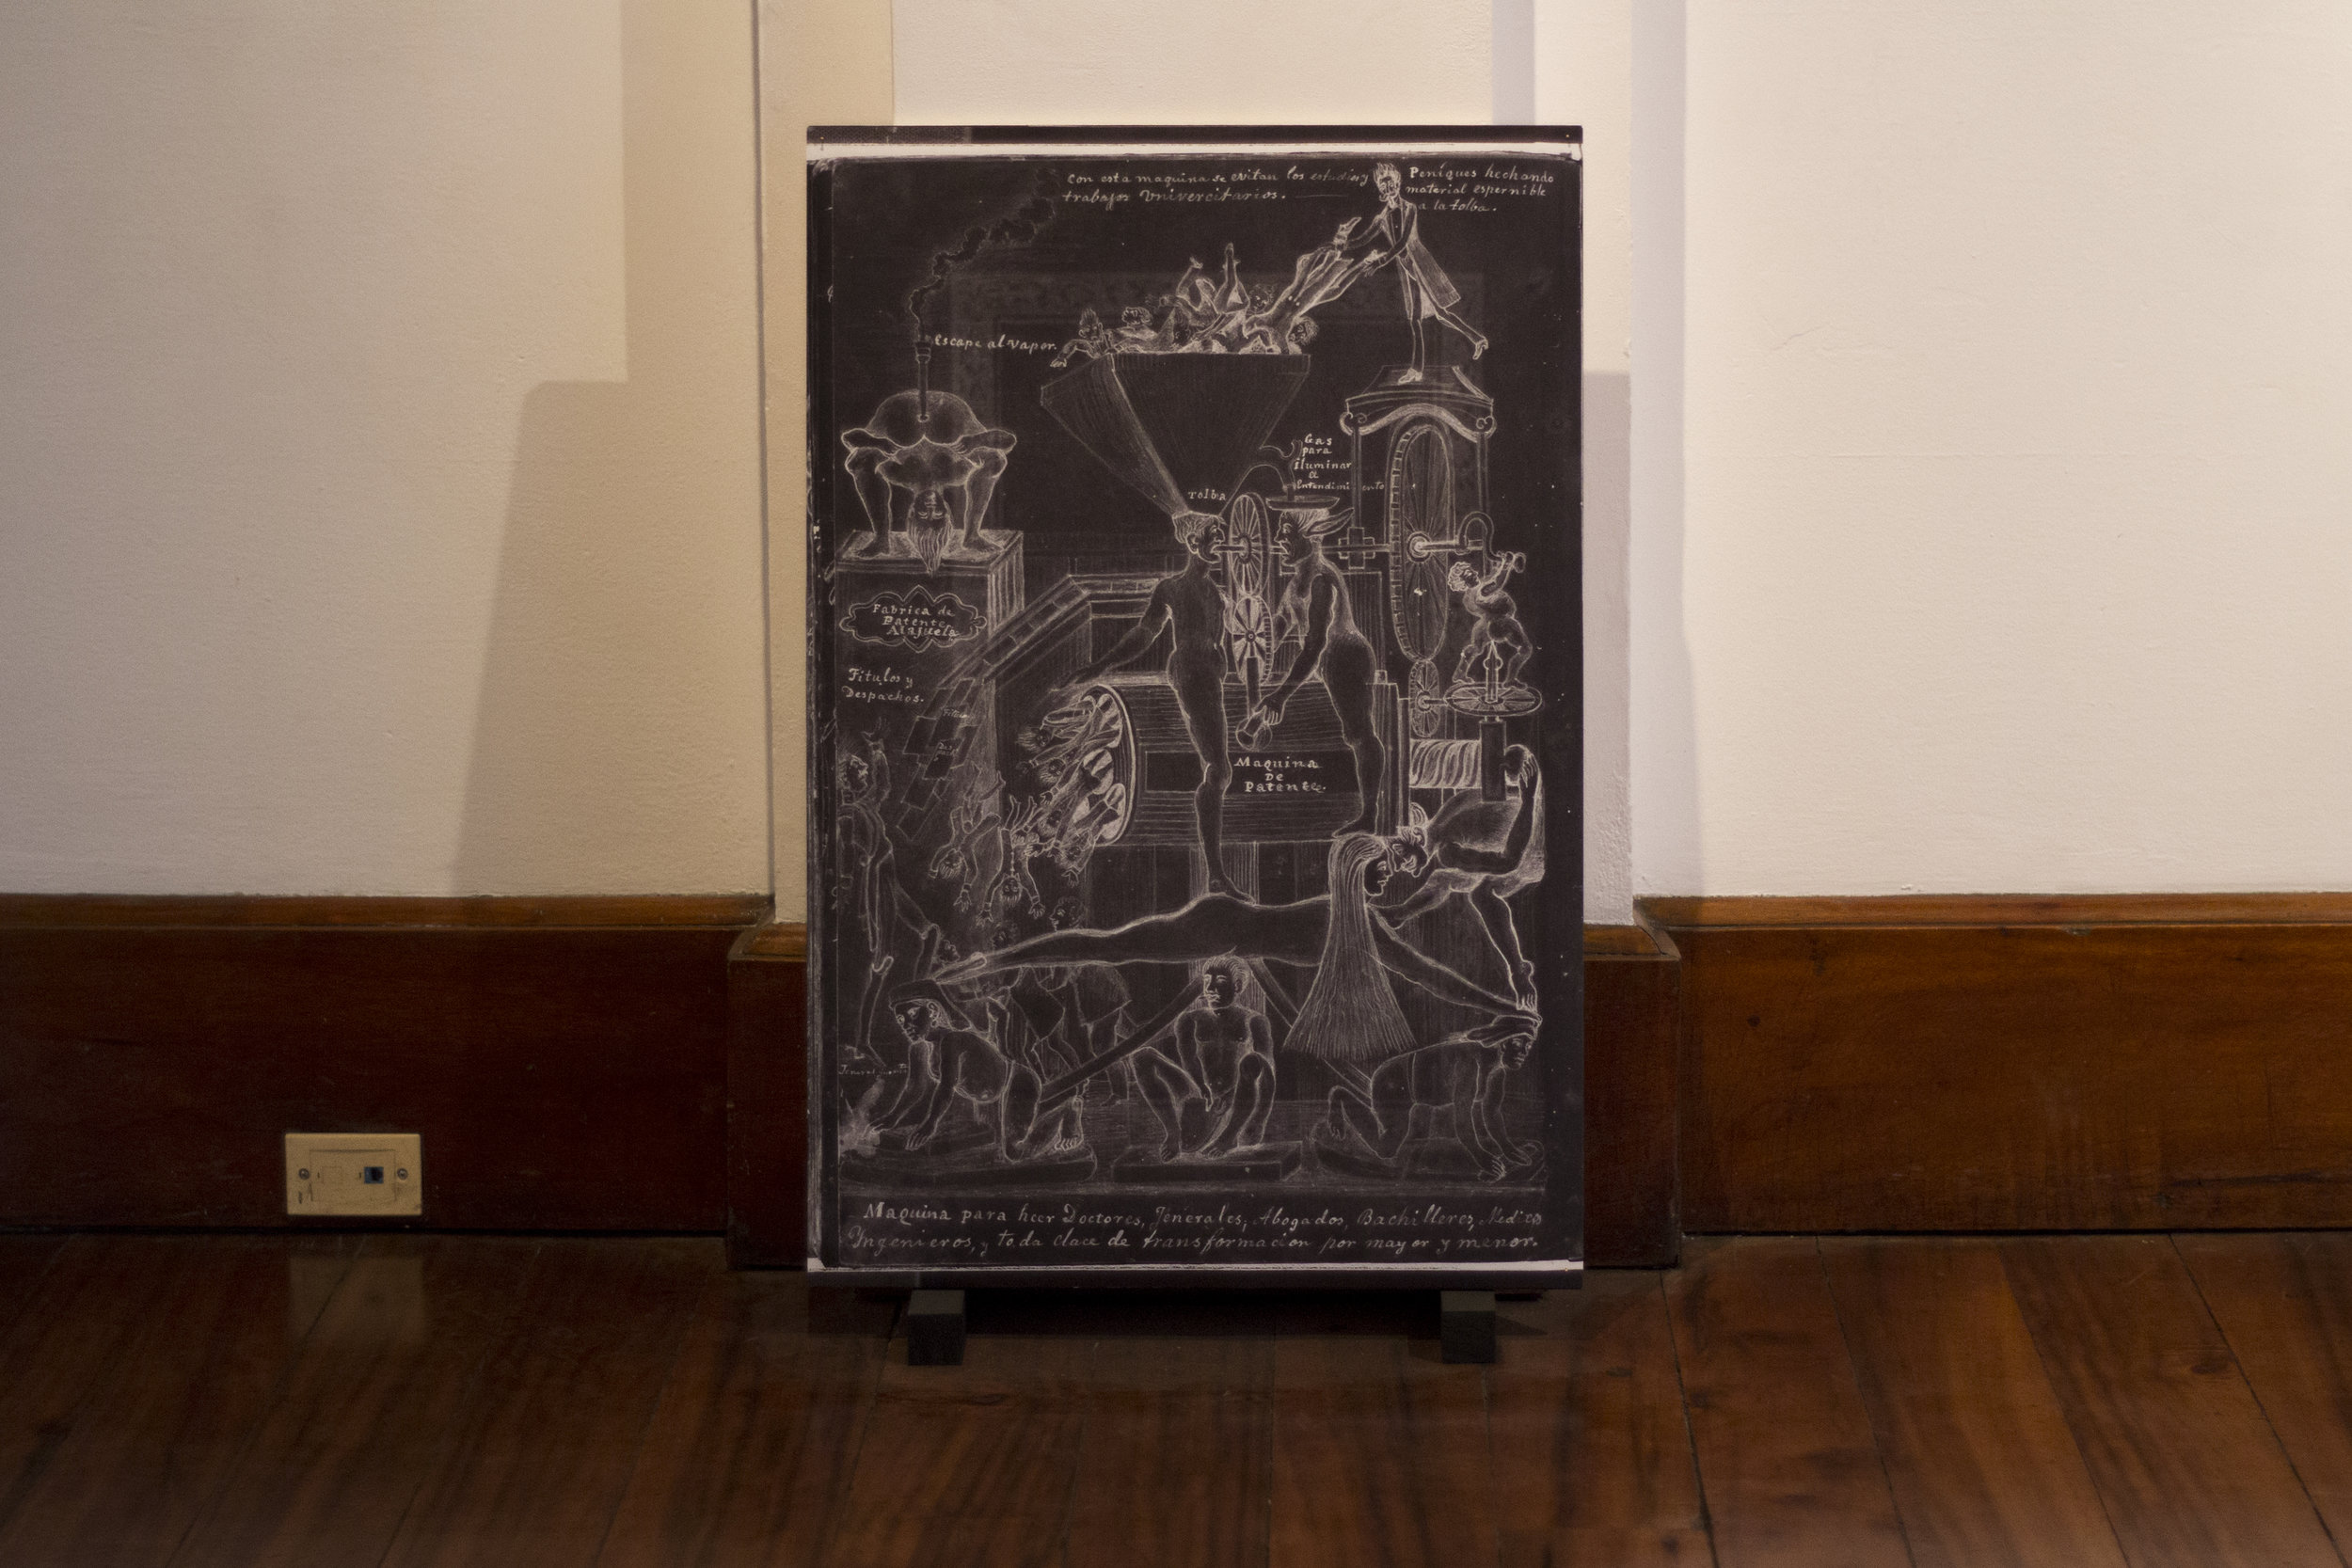 "Image in El cuaderno rojo. Property of Archivo Nacional de Costa Rica. Installation View, Alianza Francesa, Costa Rica.  The top of the image reads: ""With this machine work and university studies are avoided"". Image Verónica Alfaro. 2017"